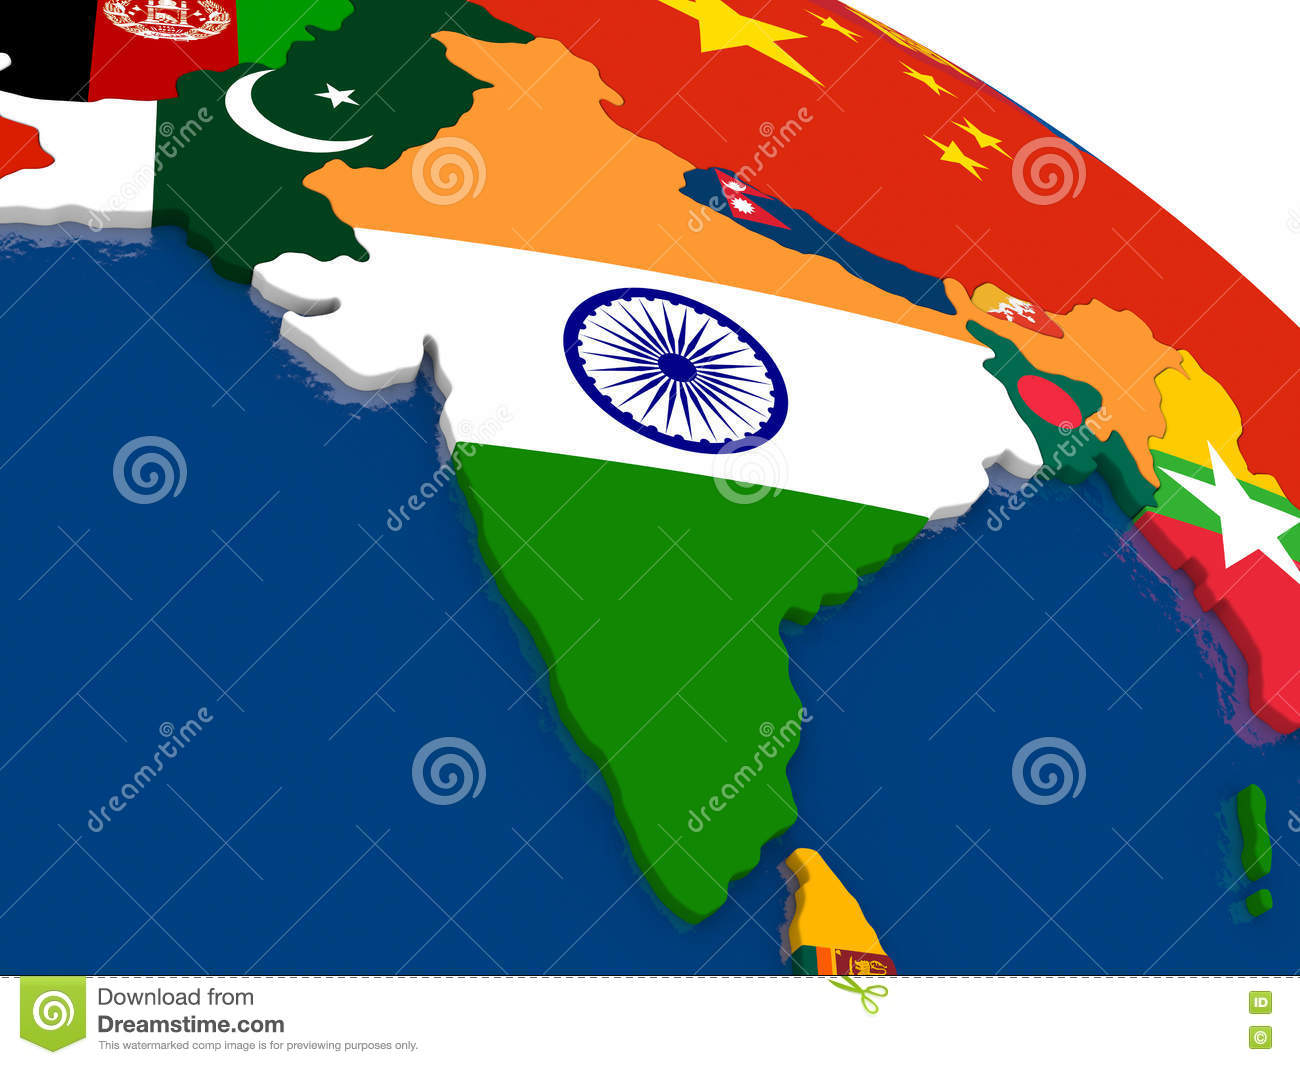 India on 3d map with flags stock illustration illustration of download india on 3d map with flags stock illustration illustration of global 73328854 gumiabroncs Image collections